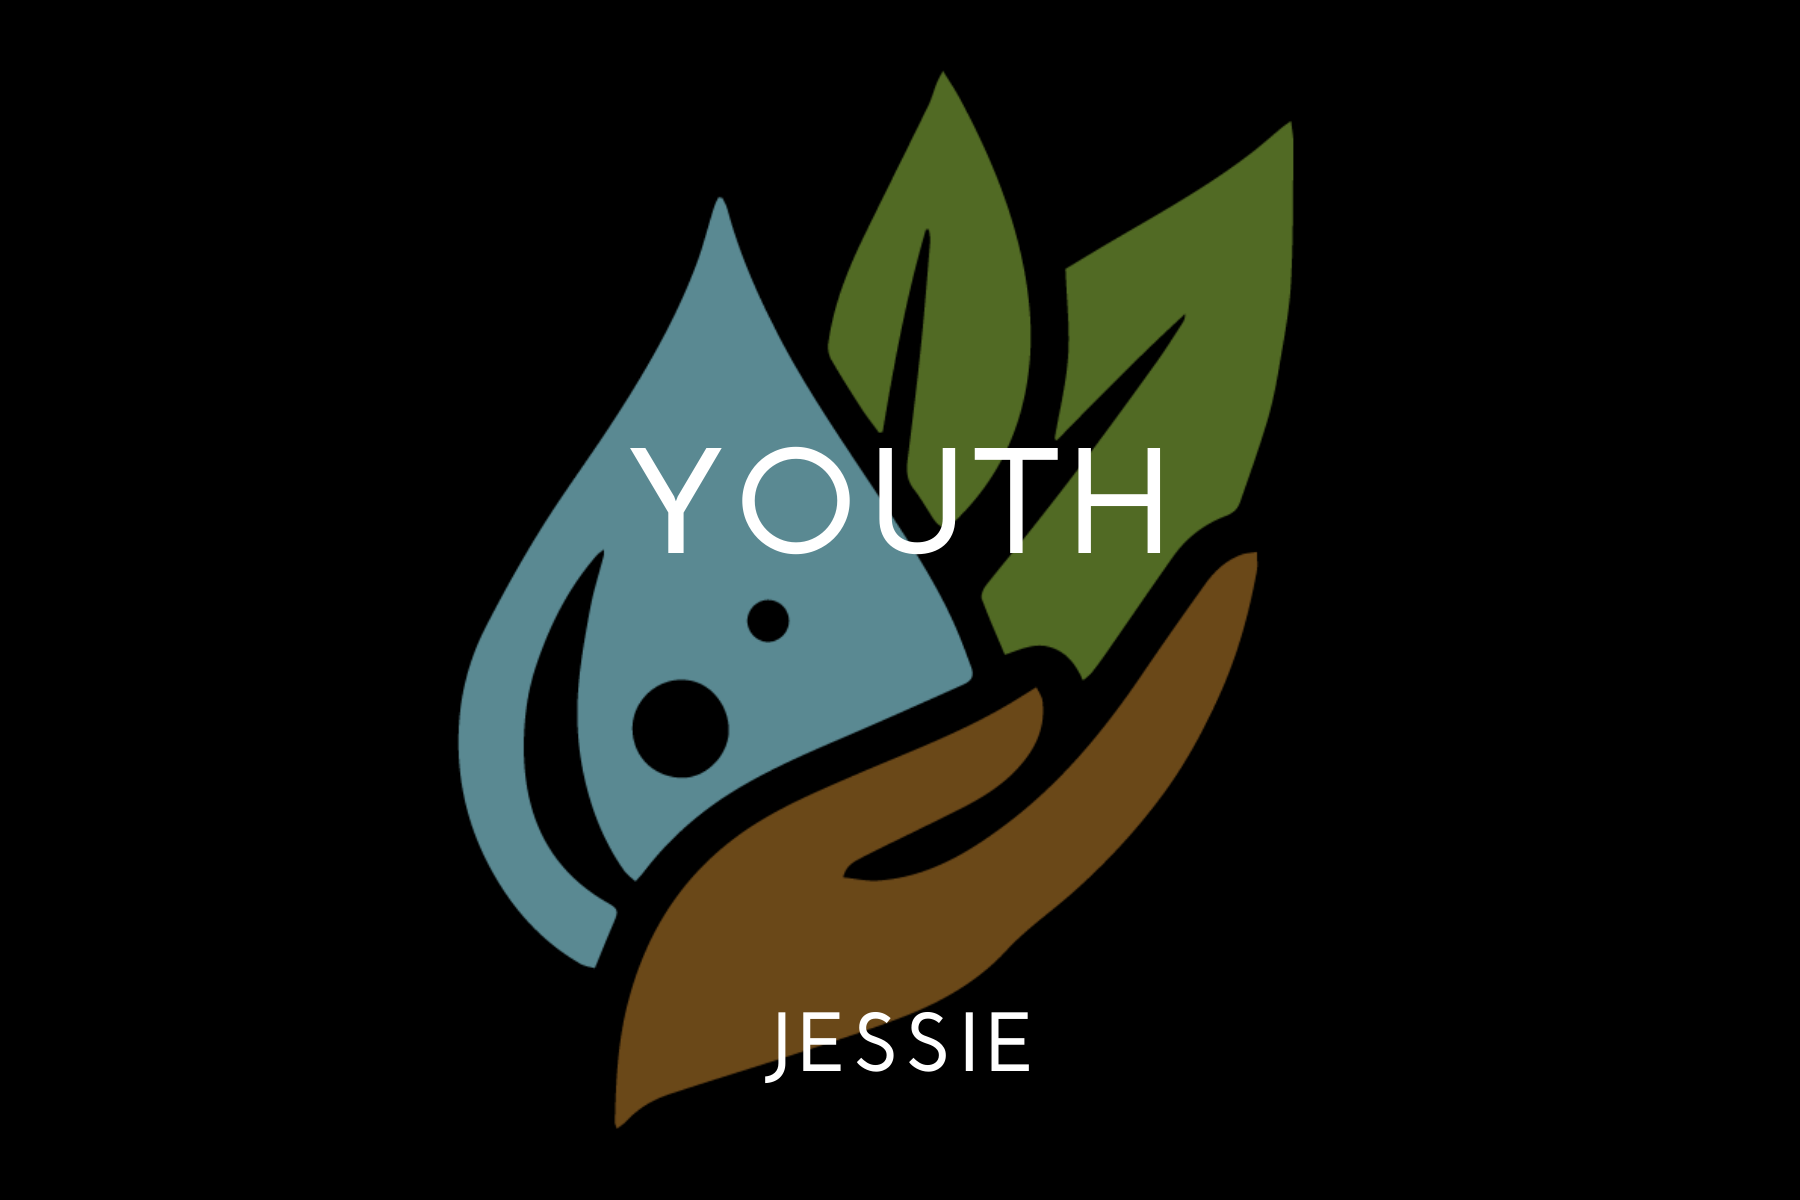 JESSIE-YOUTH.png